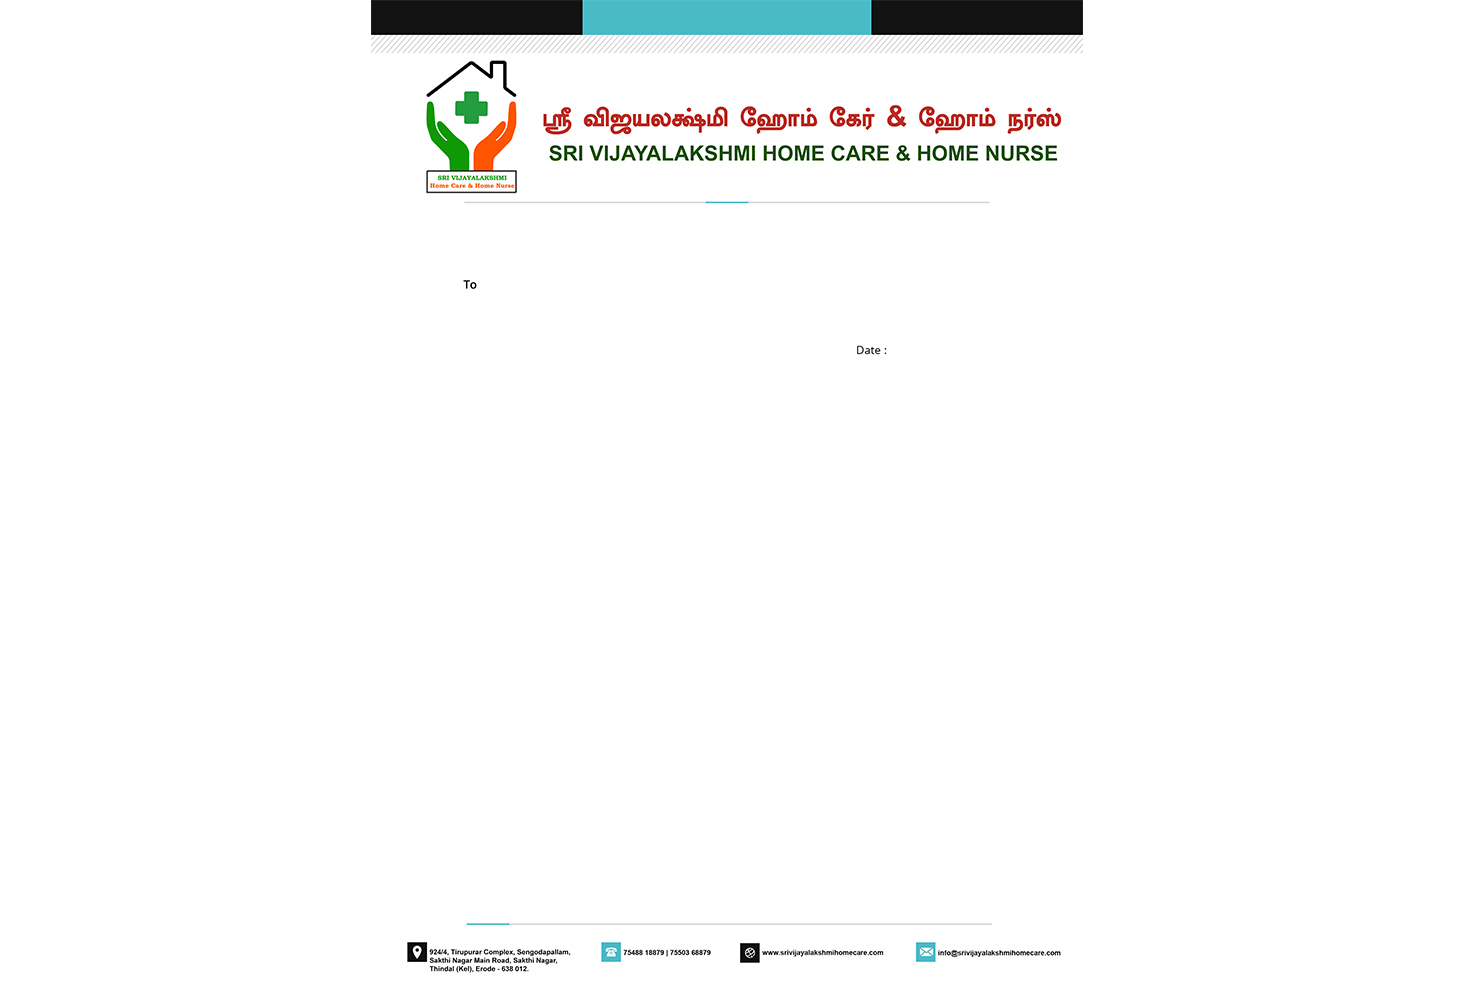 Sri Vijayalakshmi Home Care Letter Head